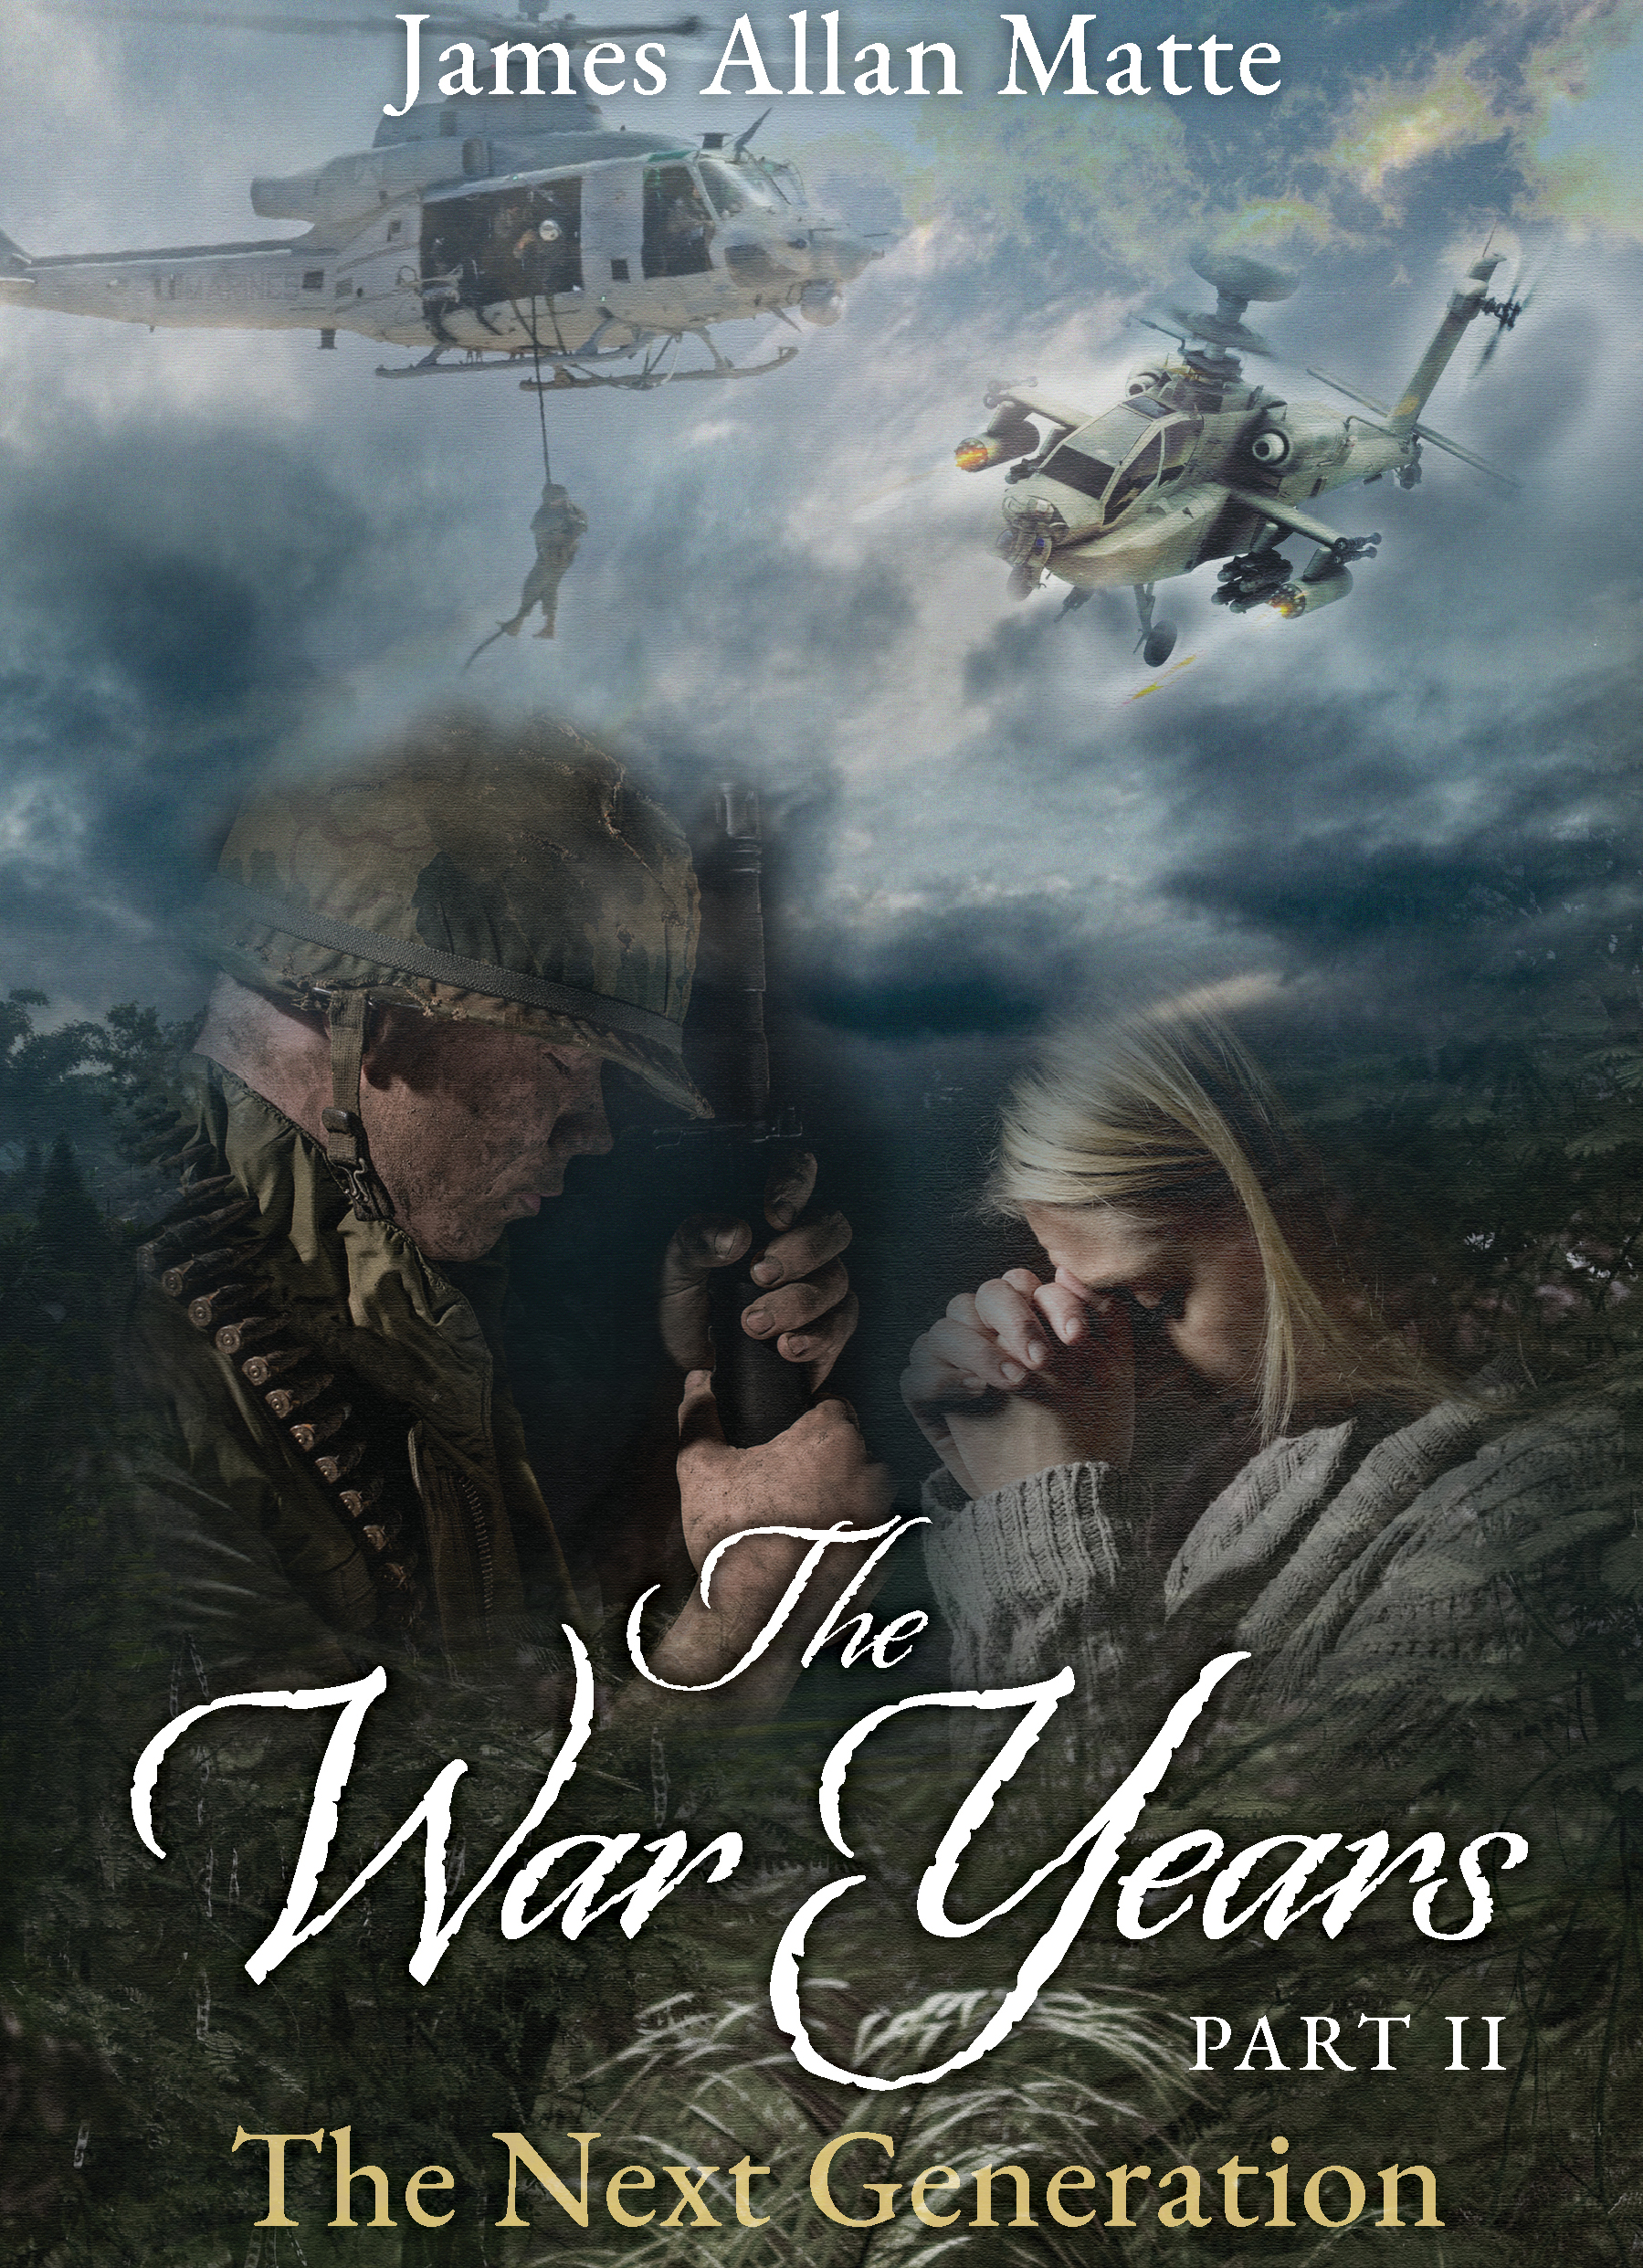 THE WAR YEARS - Part II, The Next Generation